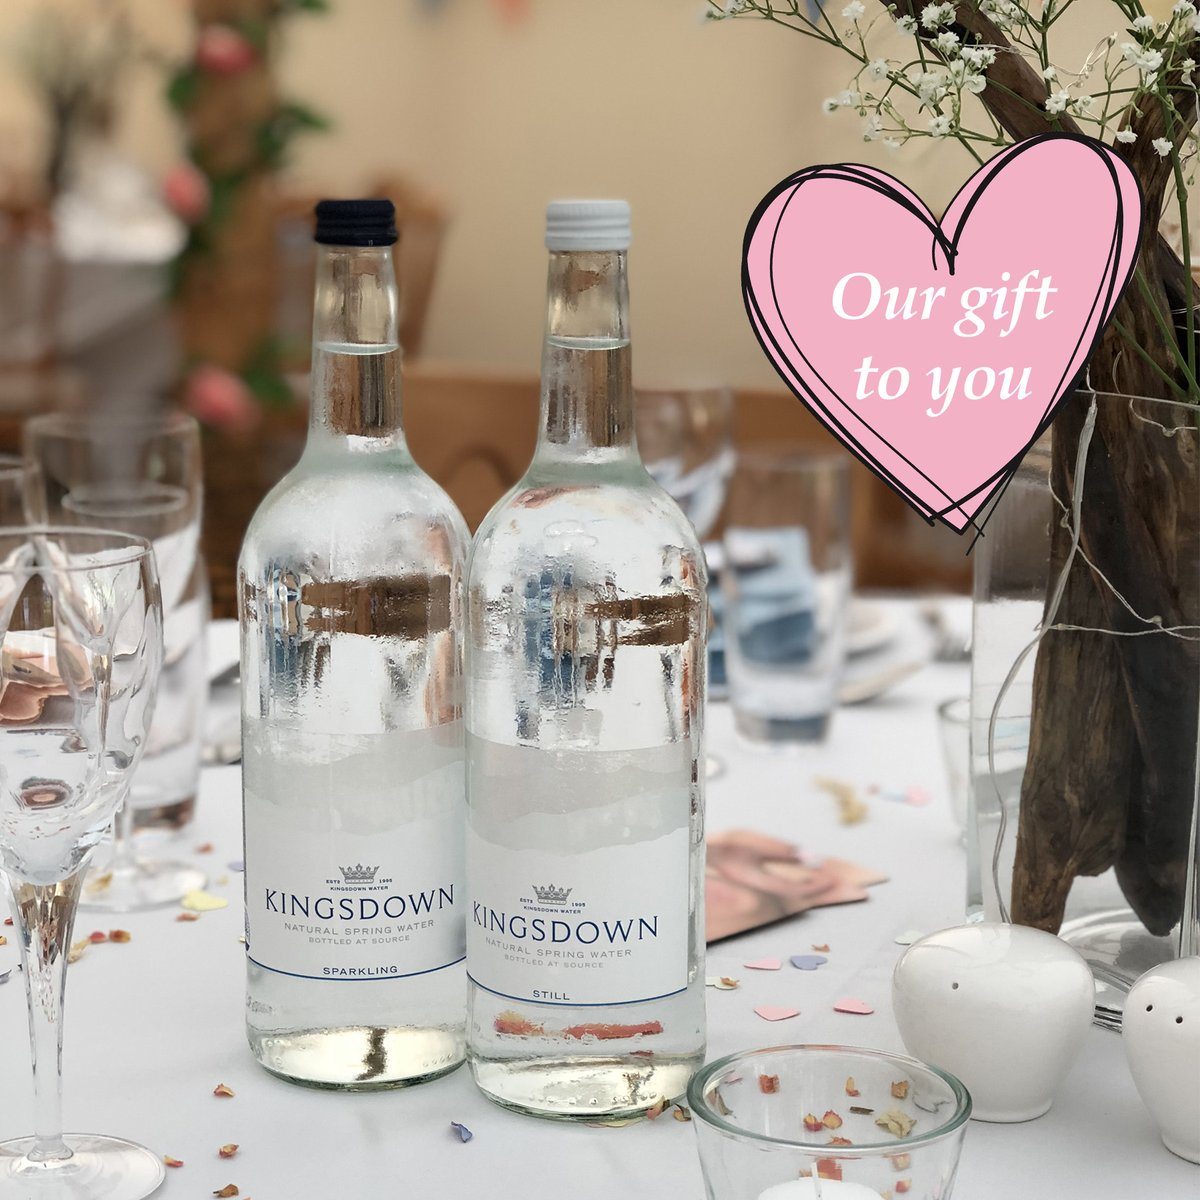 It's #weddingwednesday💍Well that's what we'd usually be talking about this time of year! If you've had to postpone your big day and need a supplier of premium bottled water & luxury soft drinks for your guests, we're offering a discount across our range. Message us for details🥰 https://t.co/HjfZOWMgTK